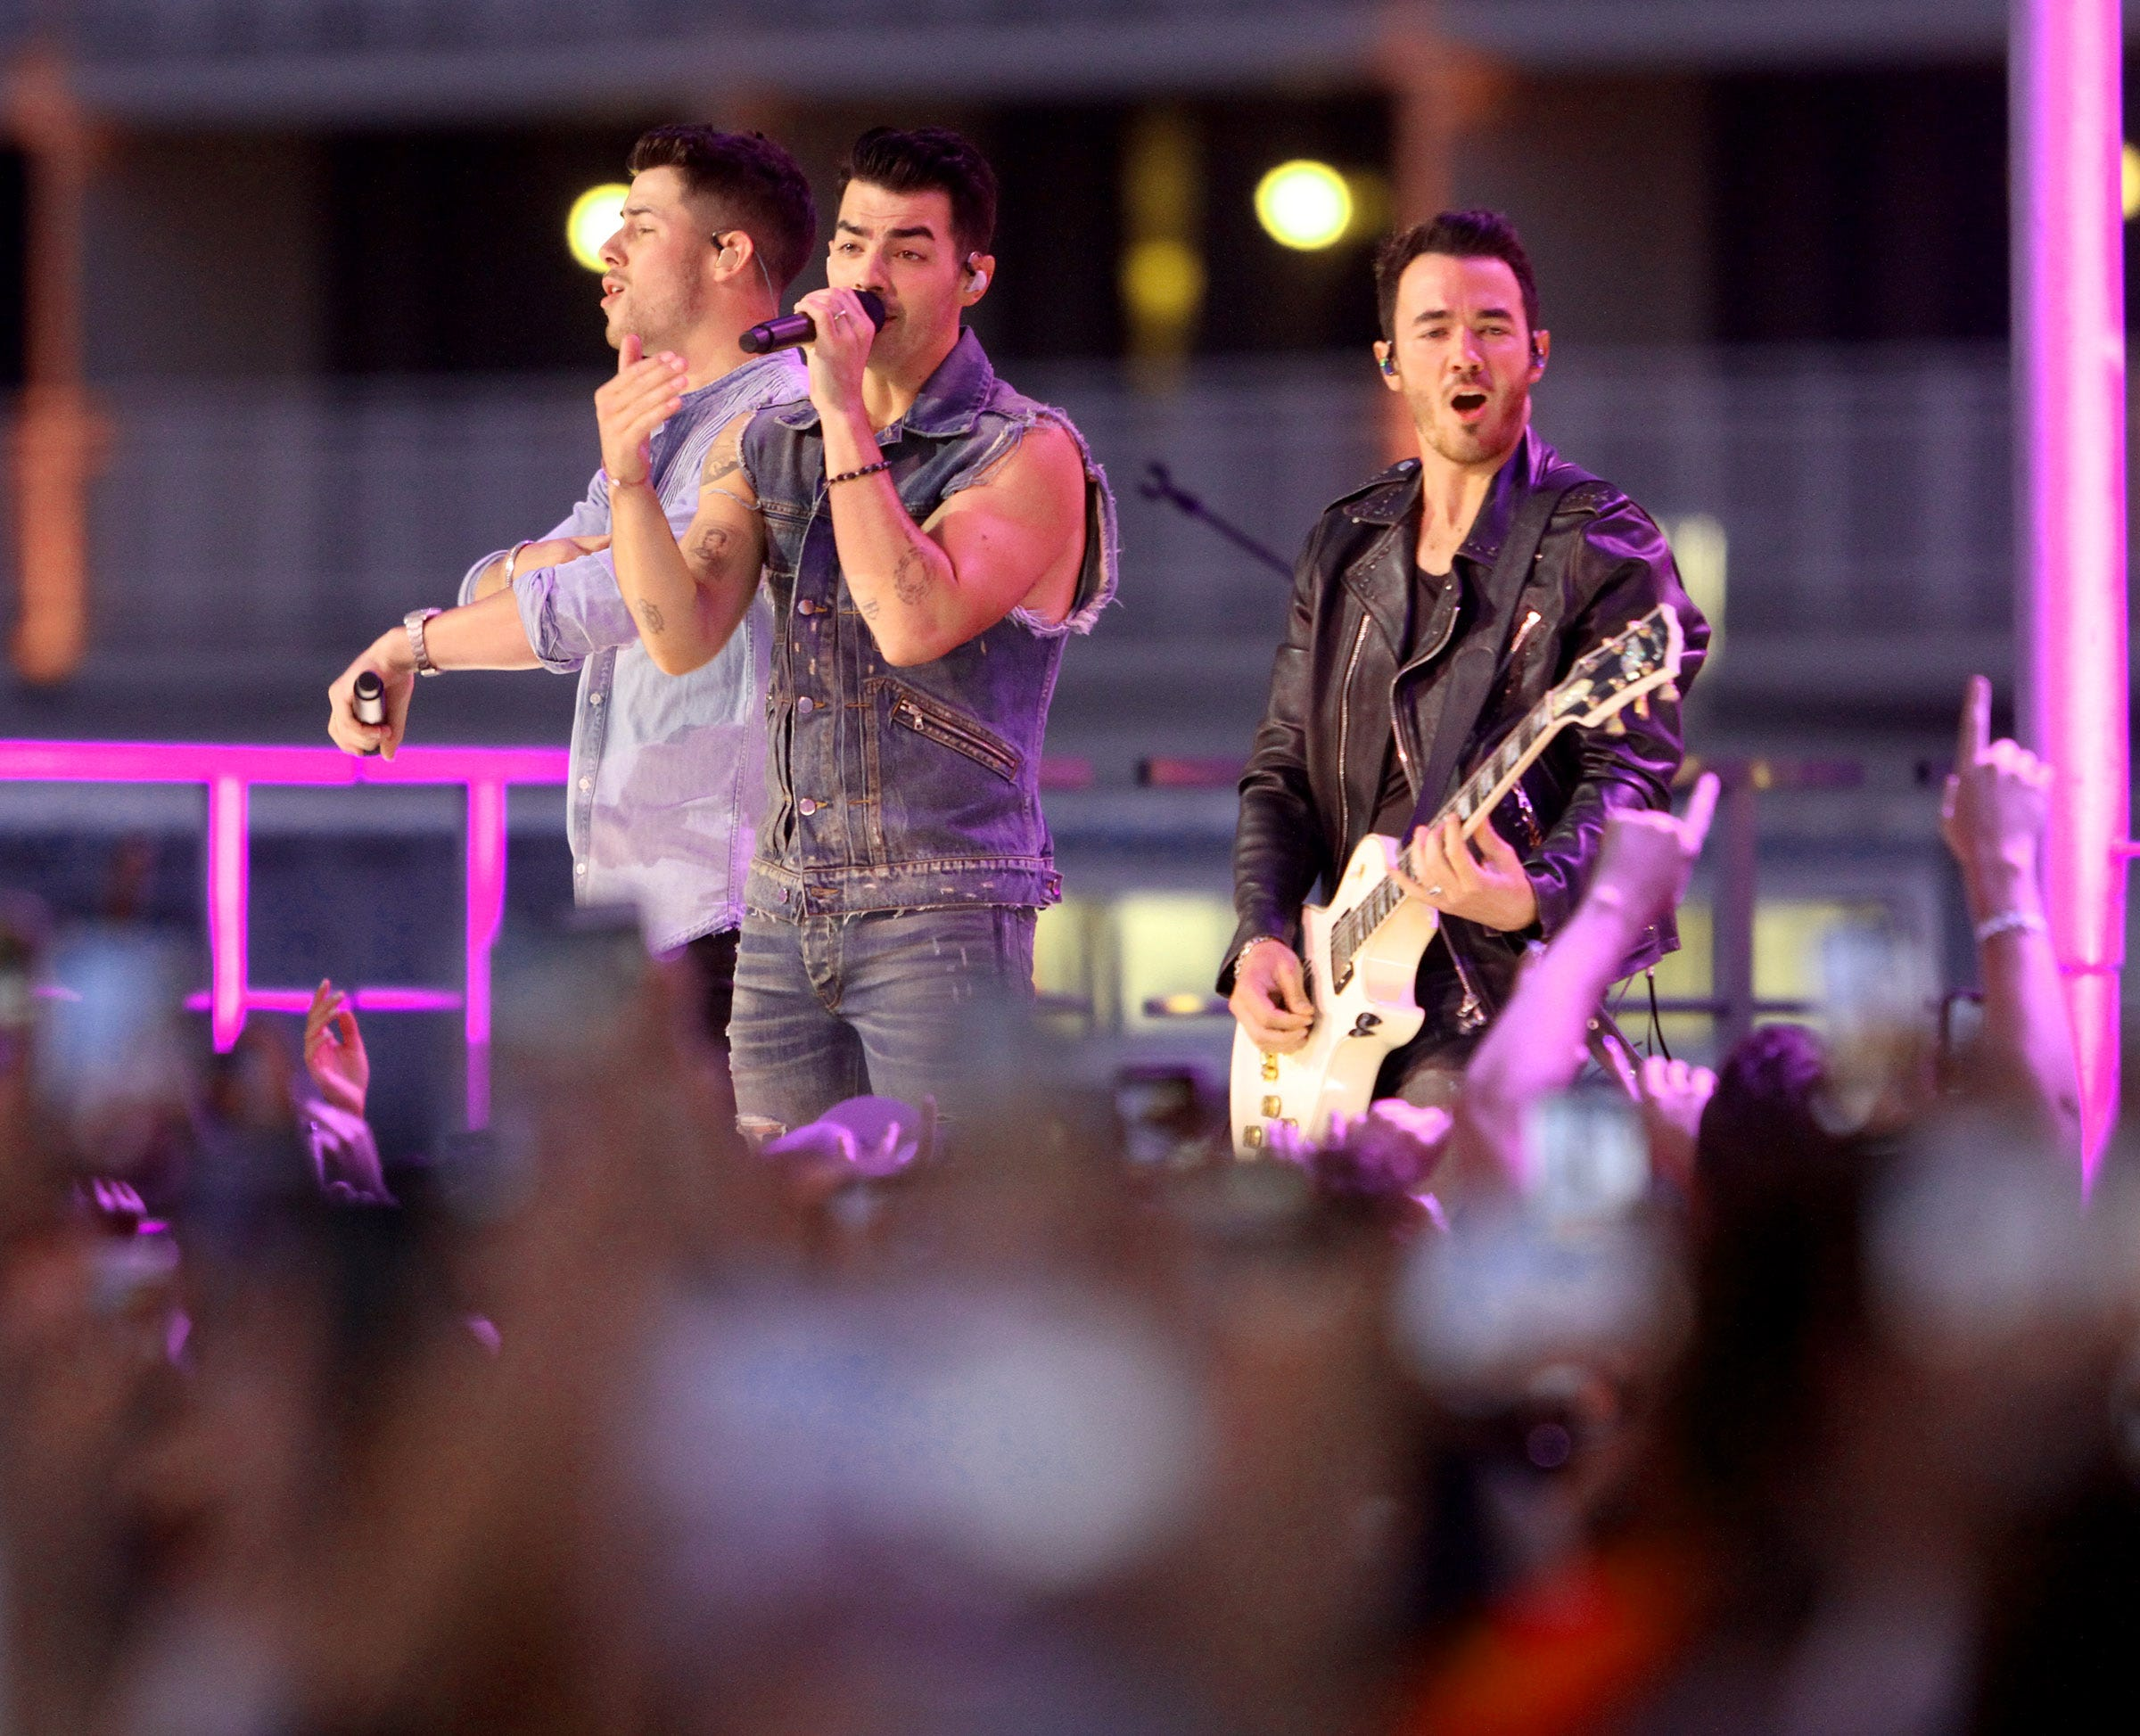 The Jonas Brothers are even better now than they were 10 years ago